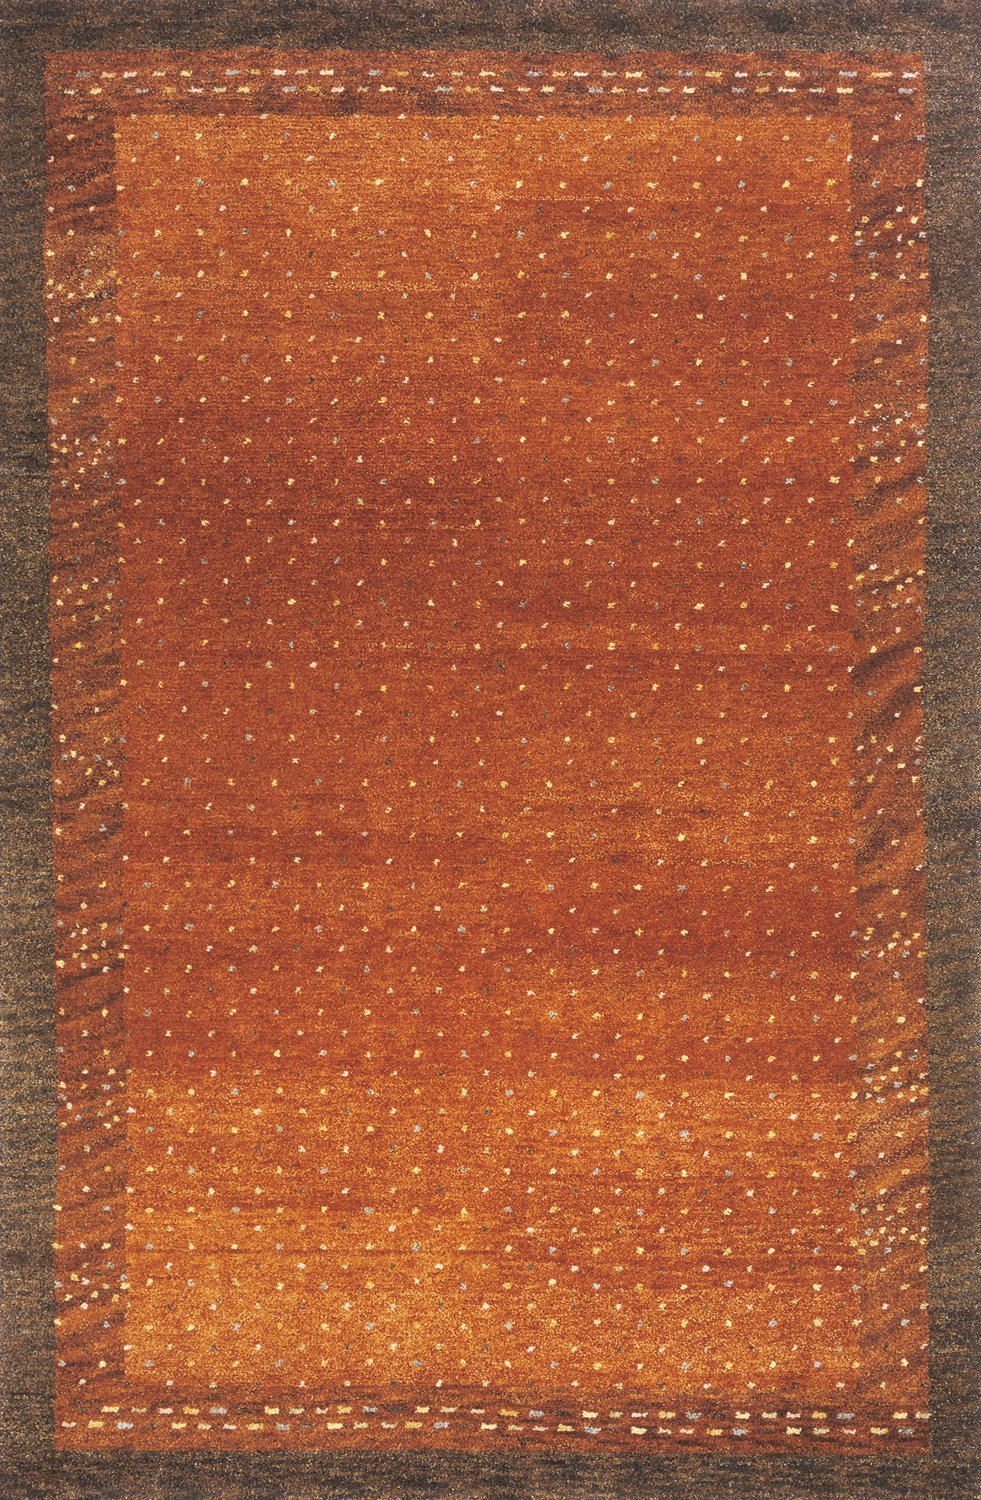 Momeni Rugs DEGABDG-01PAP5380 Desert Gabbeh Collection, 100% Wool Hand Knotted Contemporary Area Rug, 5'3'' x 8', Paprika